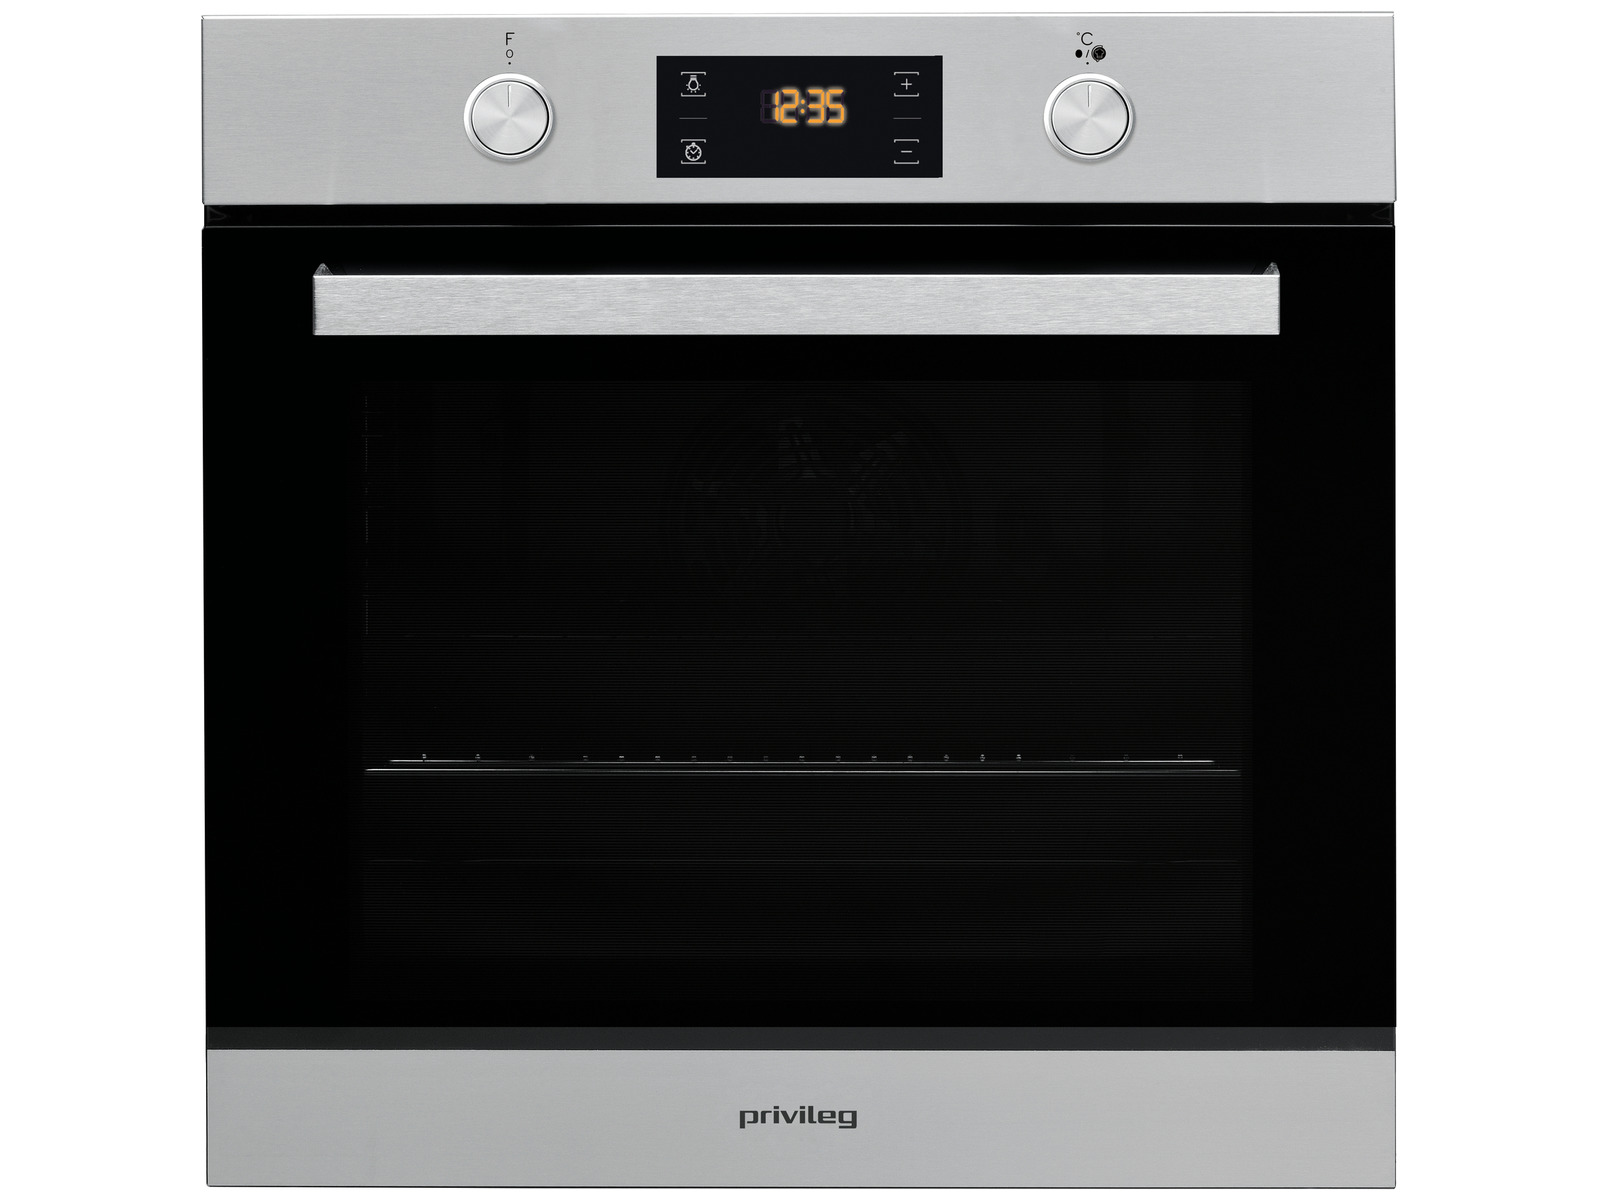 einbau backofen free pbwr opv in with einbau backofen excellent samsung nvkbseg l mit jahren. Black Bedroom Furniture Sets. Home Design Ideas